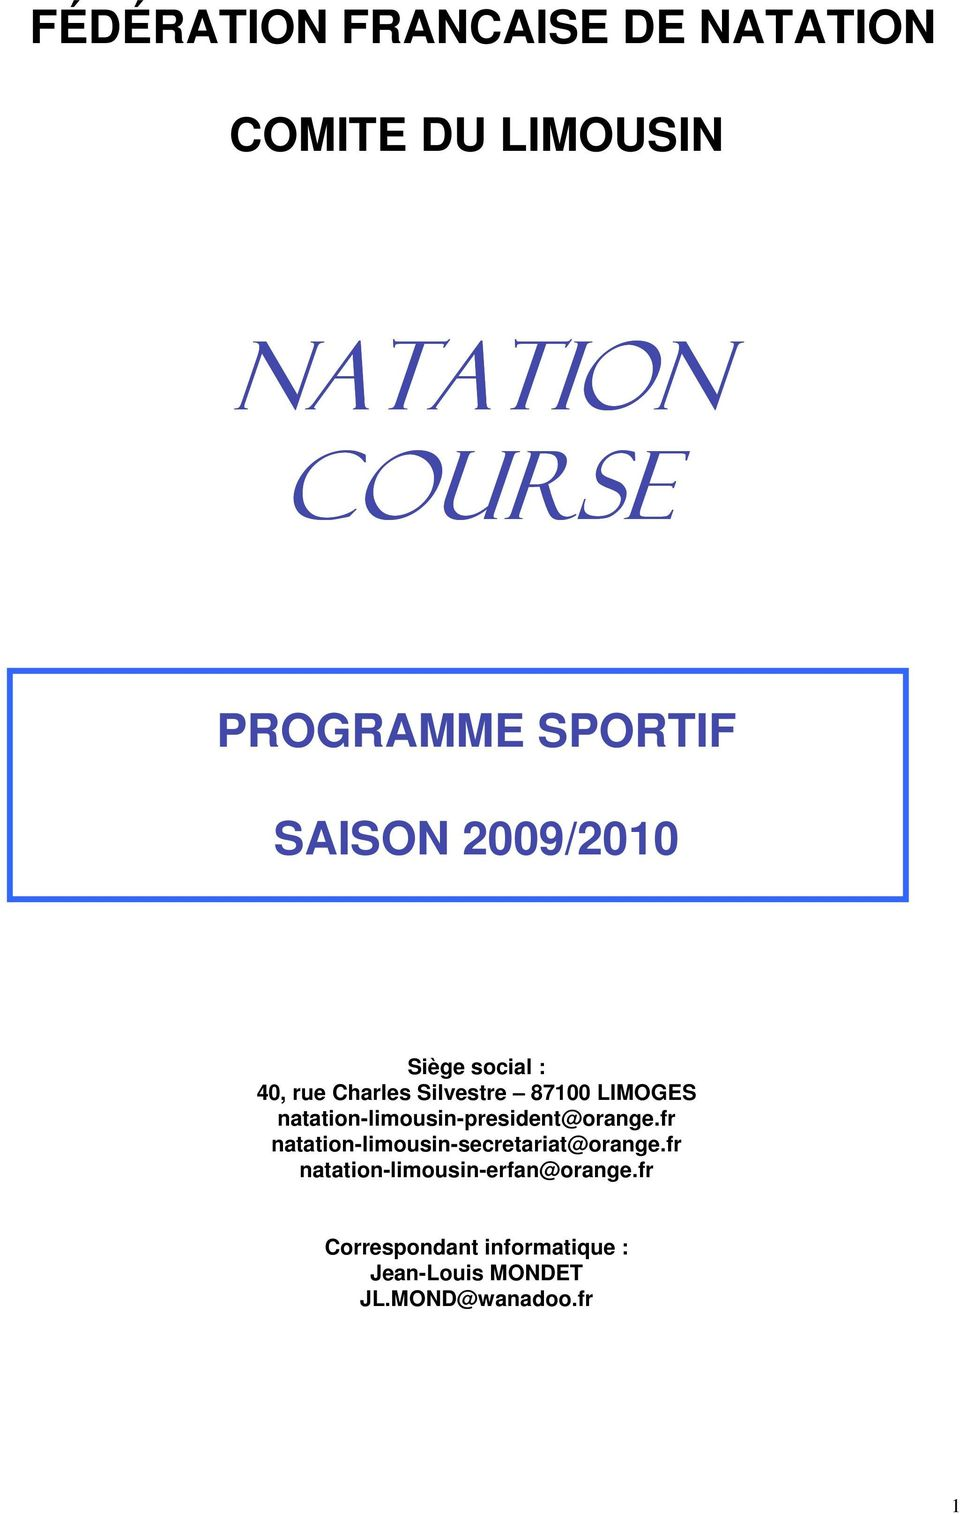 natation-limousin-president@orange.fr natation-limousin-secretariat@orange.